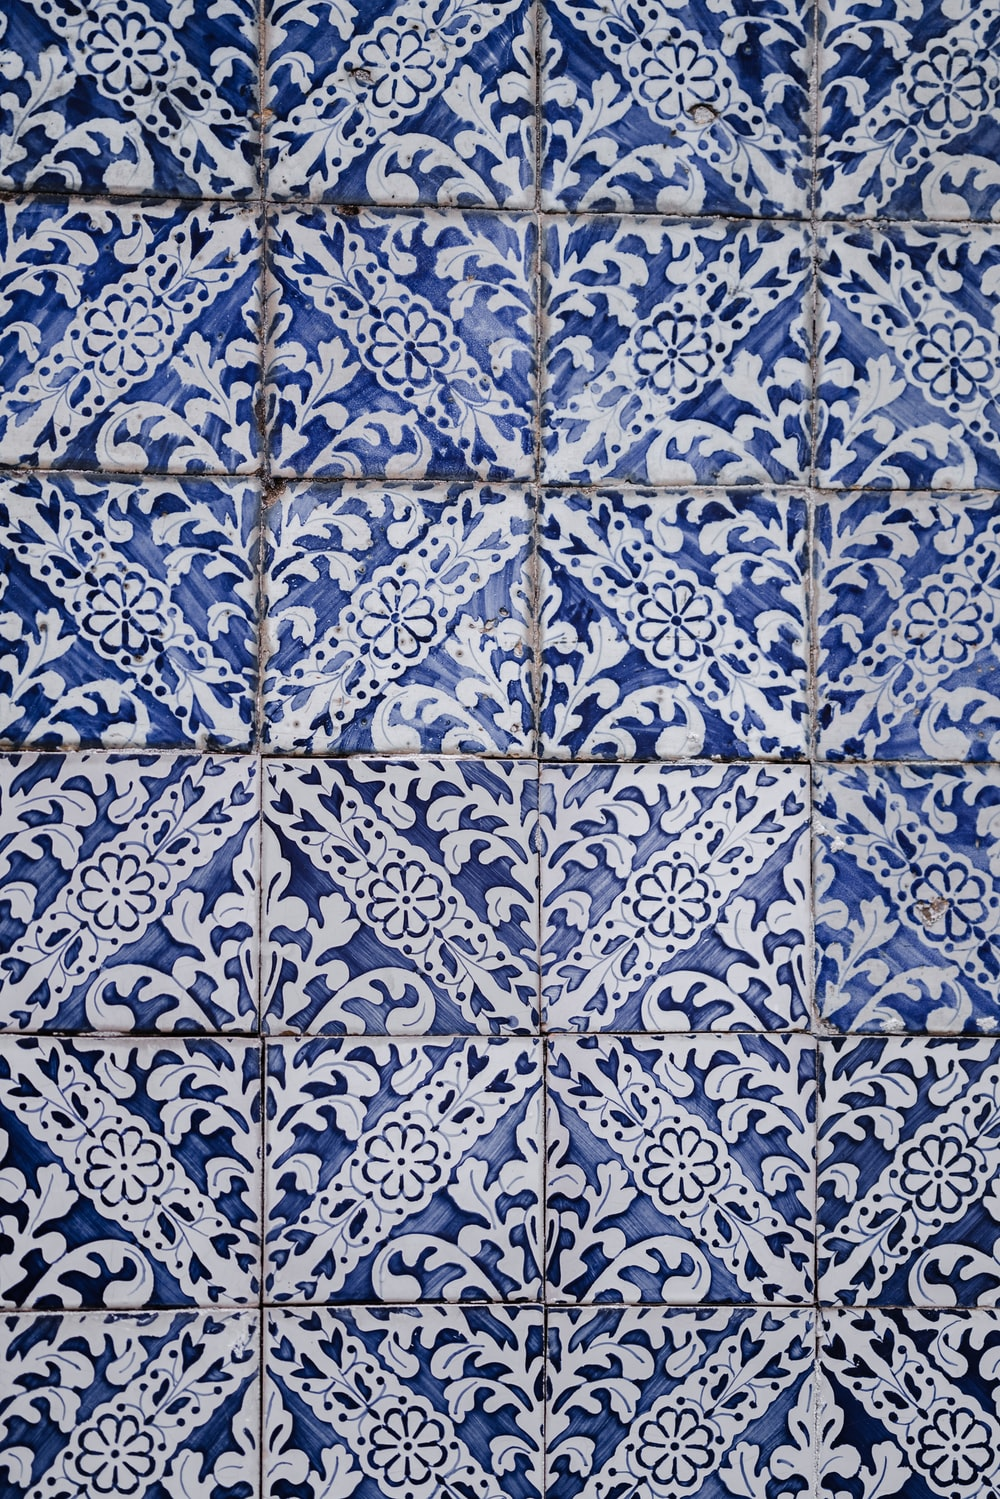 white and blue floral tiles